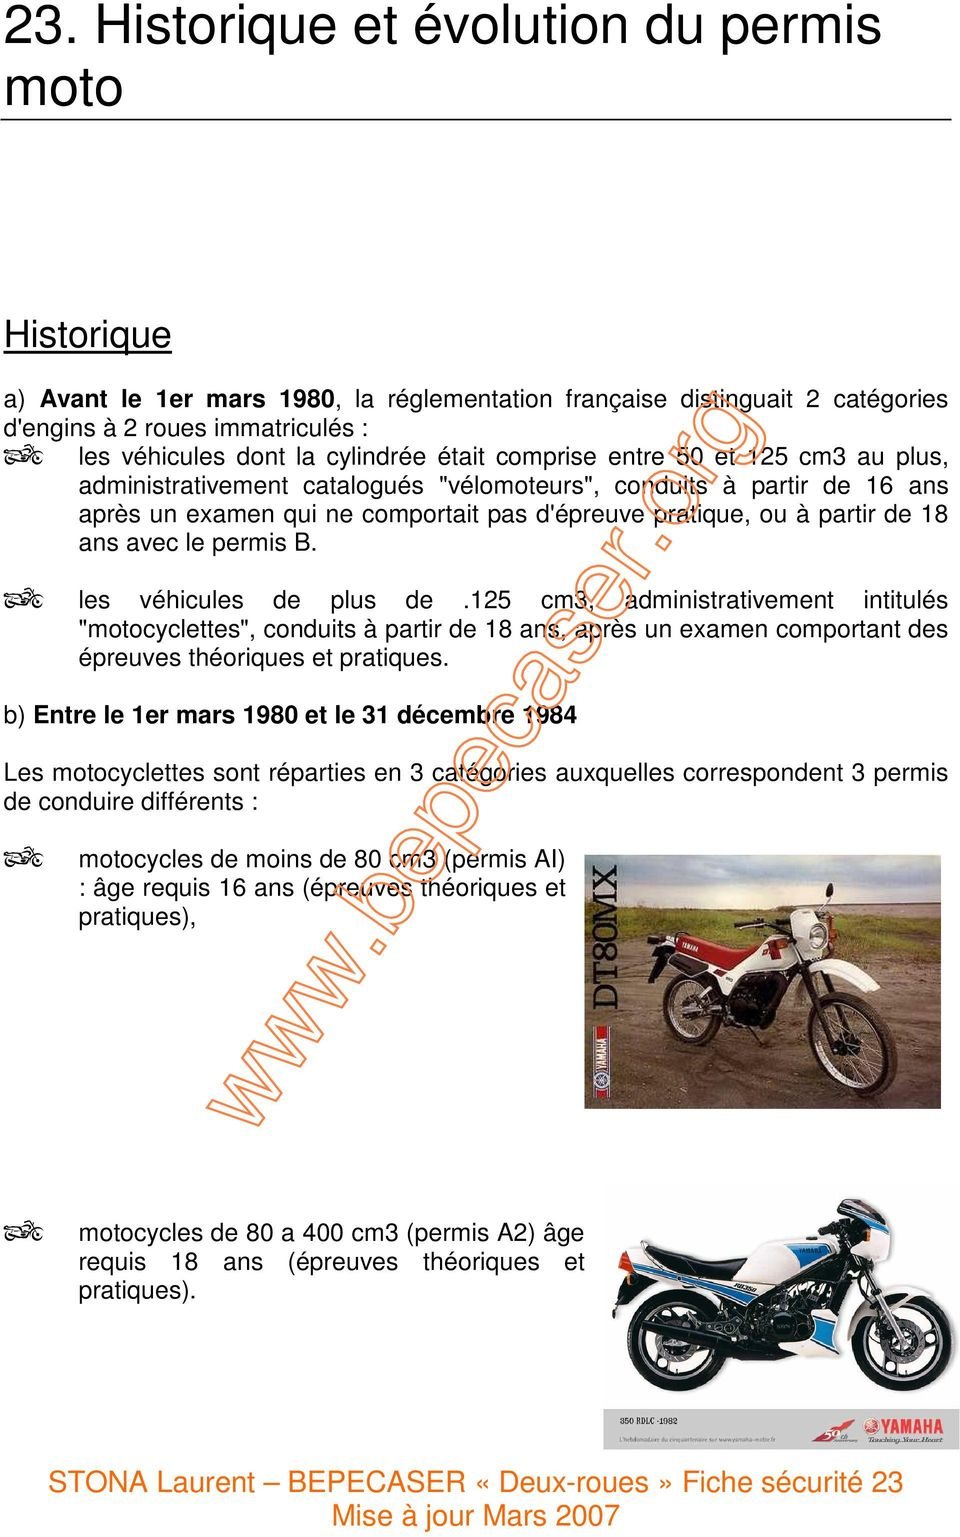 23 historique et volution du permis moto pdf. Black Bedroom Furniture Sets. Home Design Ideas